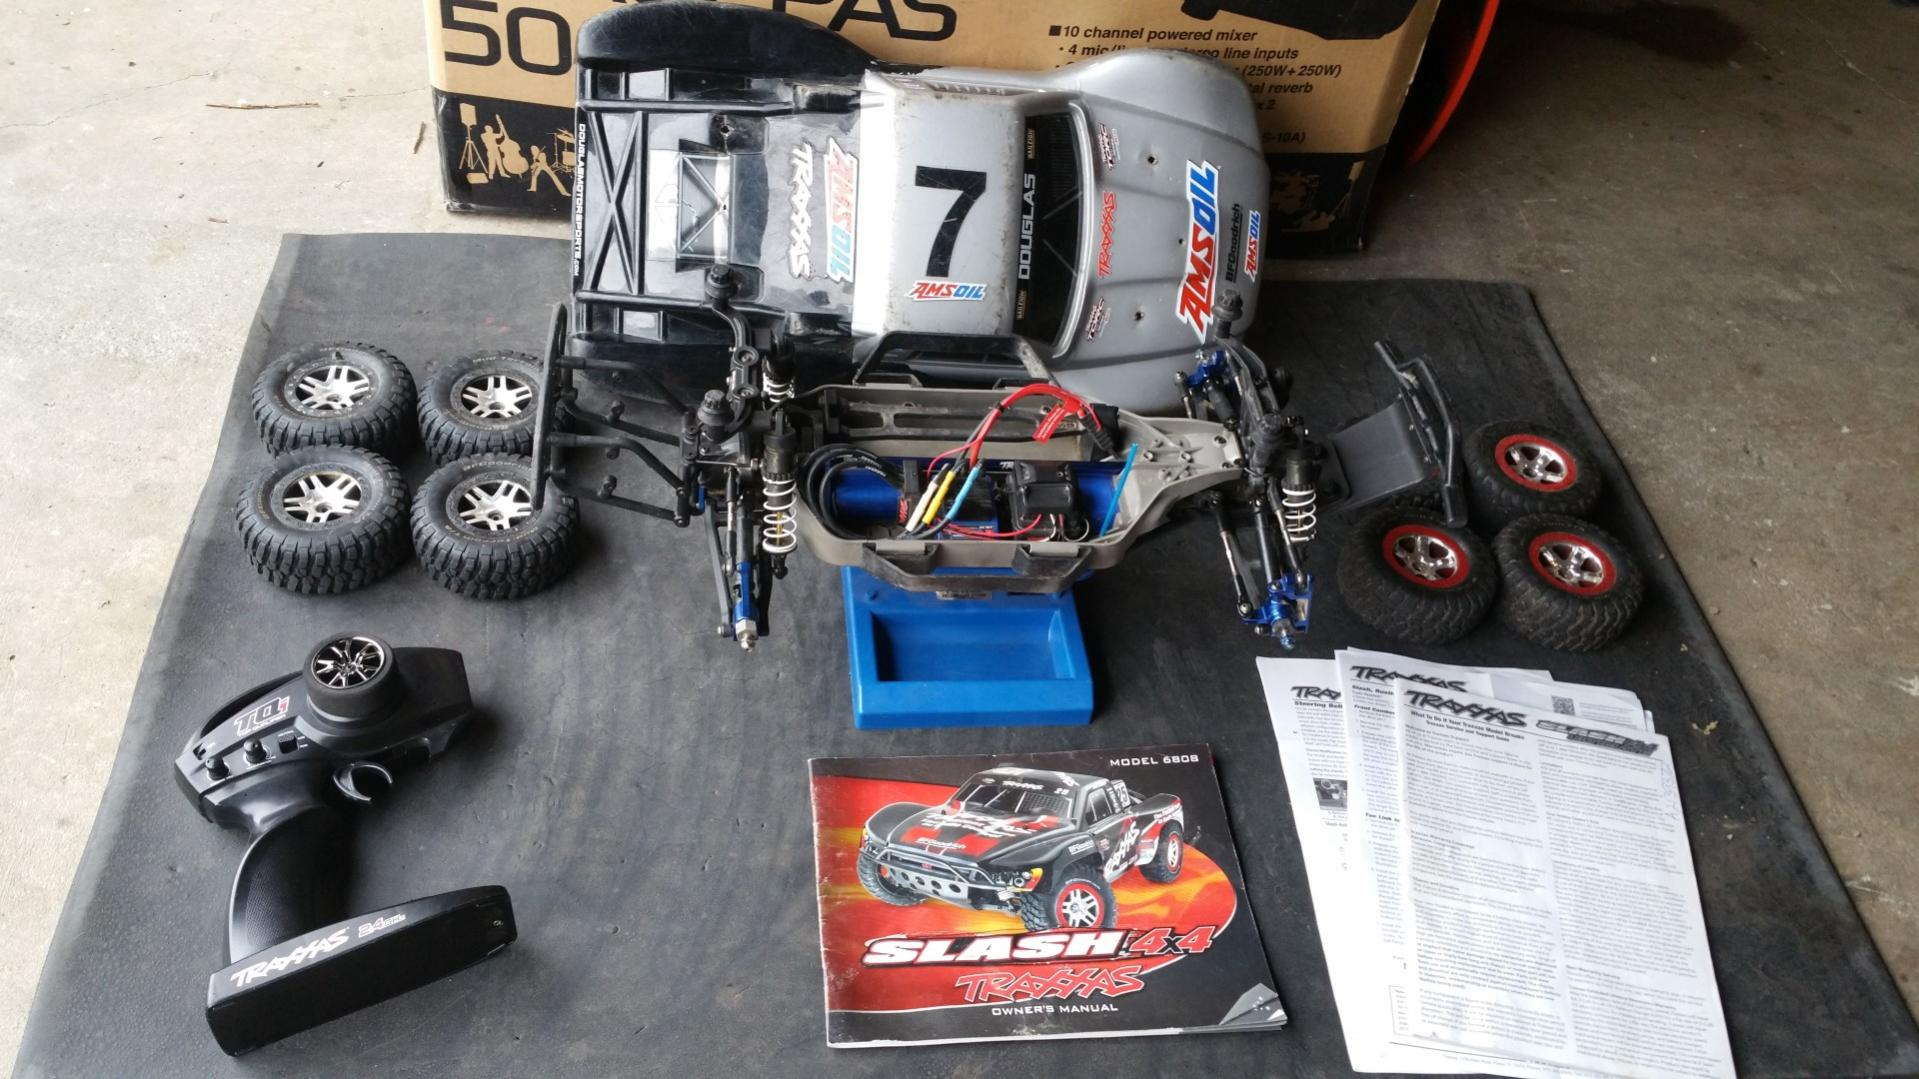 Traxxas Slash 4x4 LCG Ultimate Edition RTR full RPM - R/C